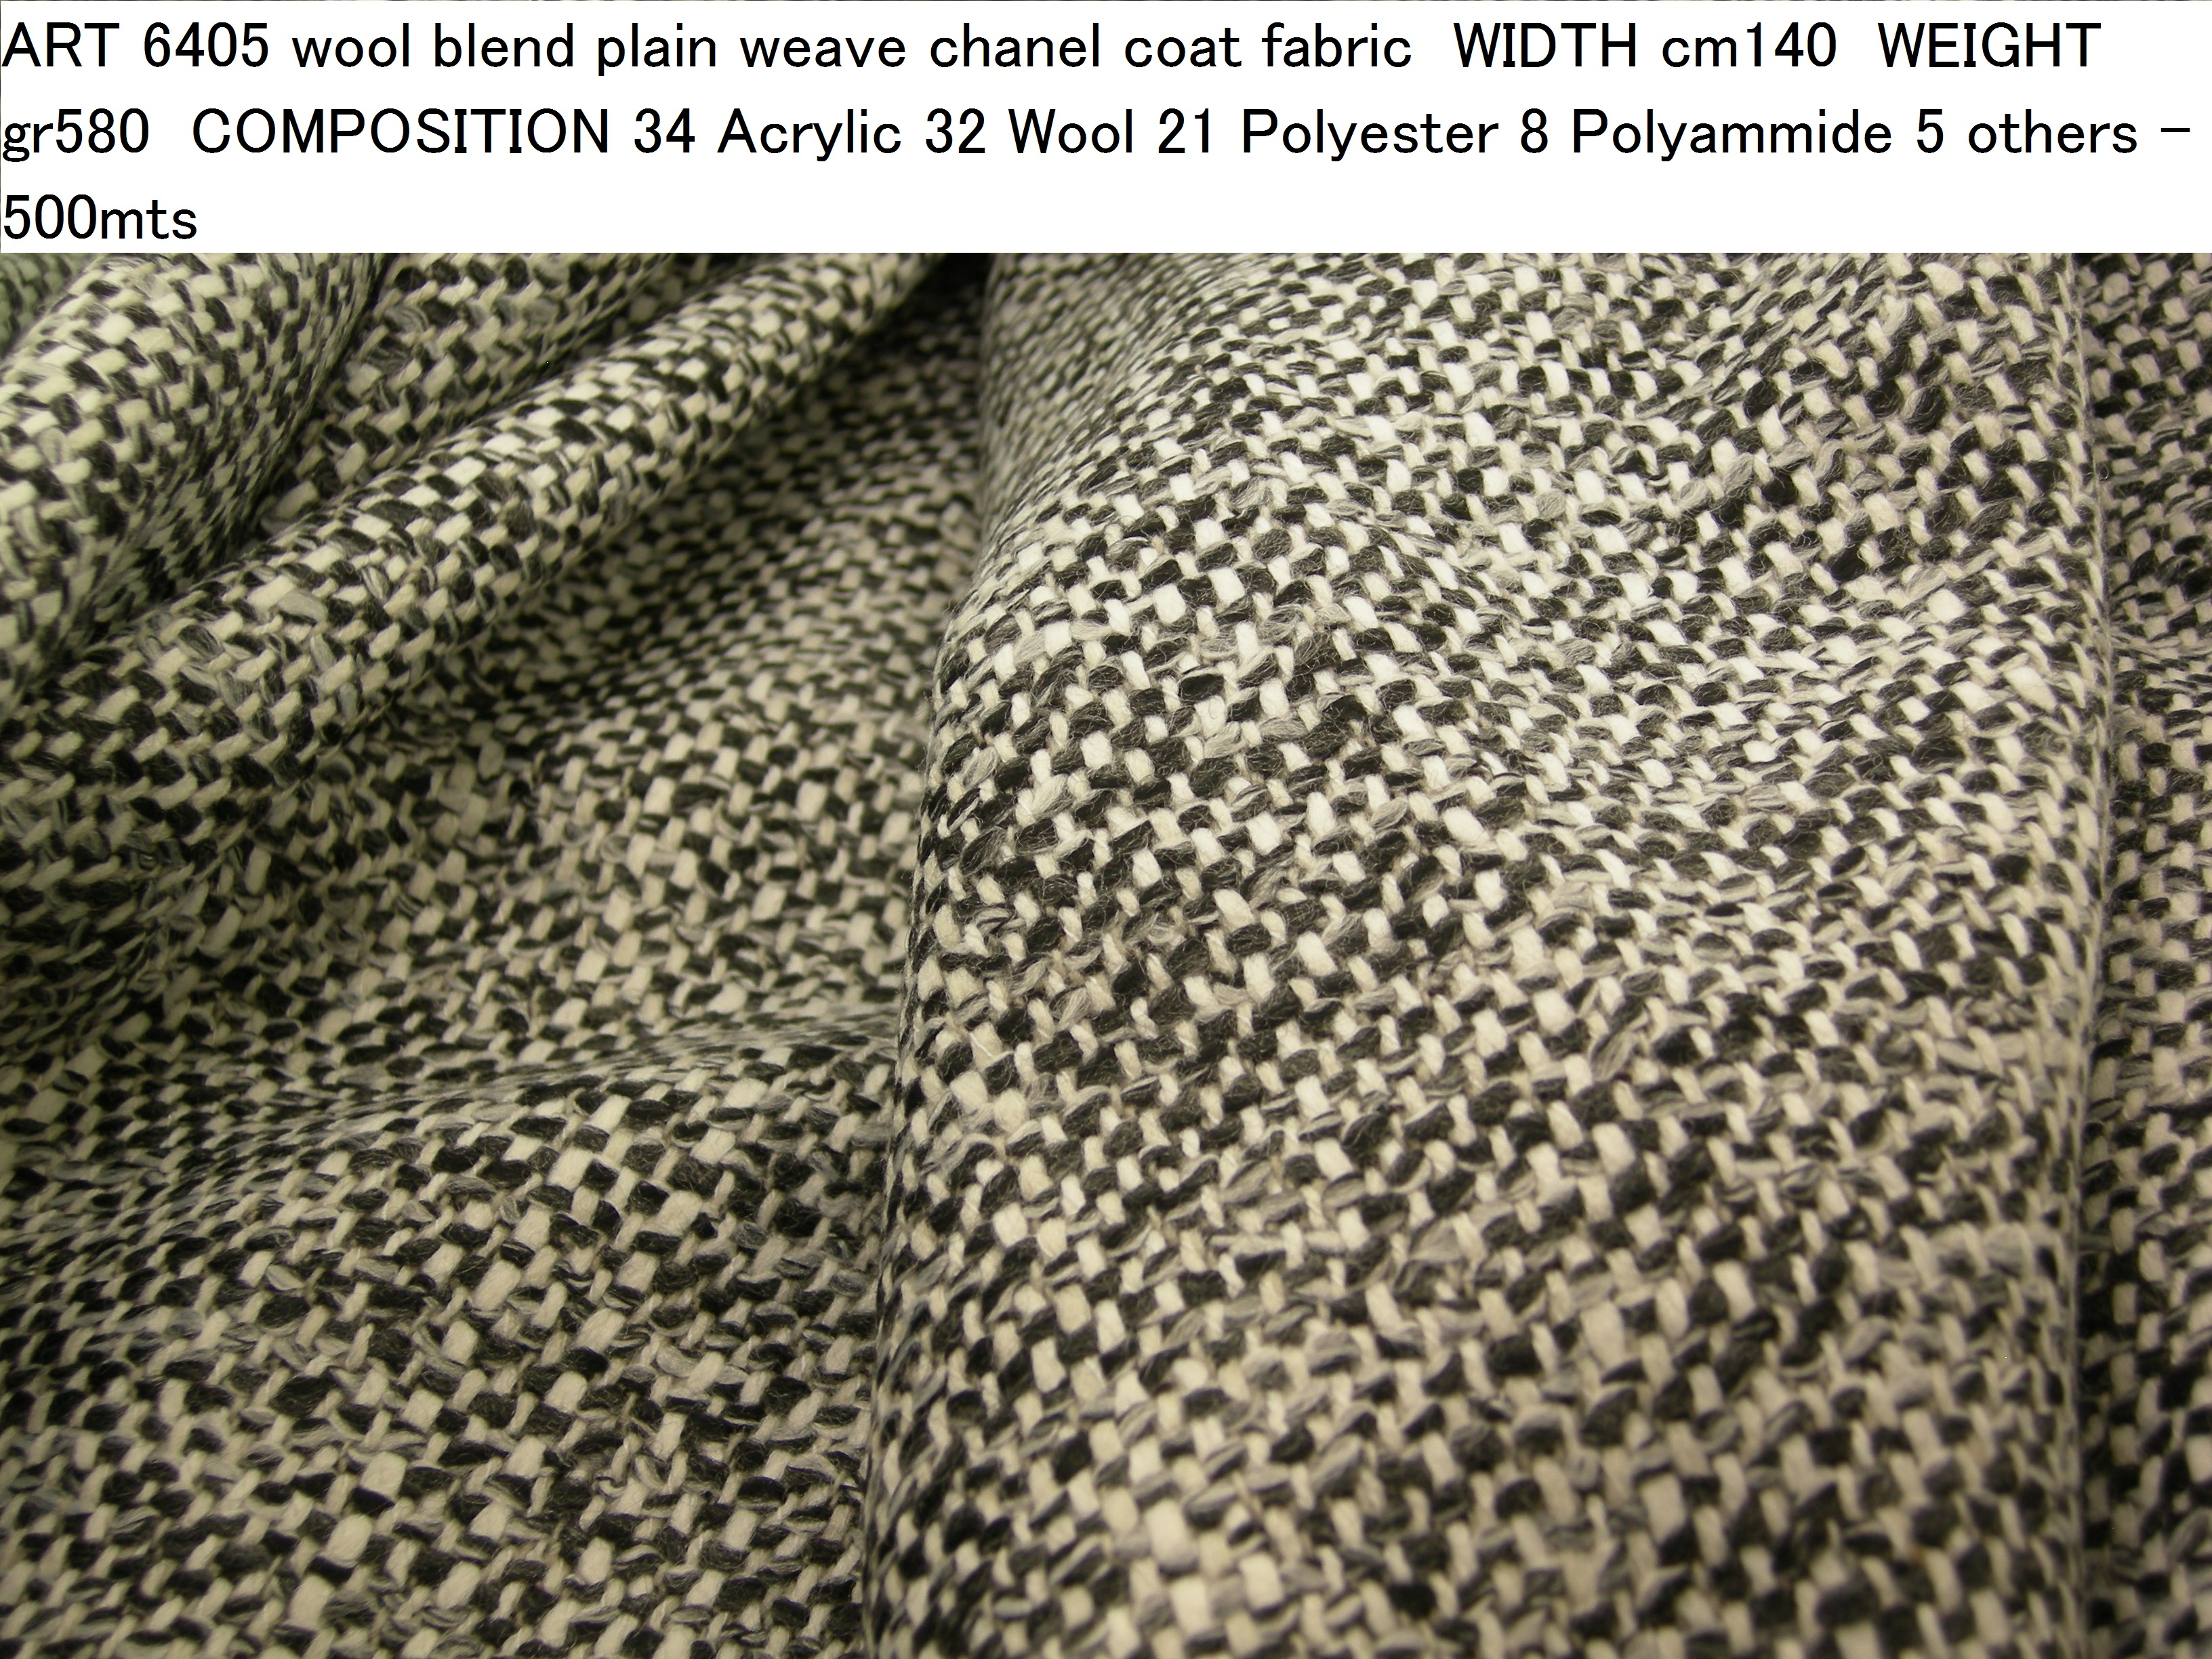 ART 6405 wool blend plain weave chanel coat fabric WIDTH cm140 WEIGHT gr580 COMPOSITION 34 Acrylic 32 Wool 21 Polyester 8 Polyammide 5 others - 500mts